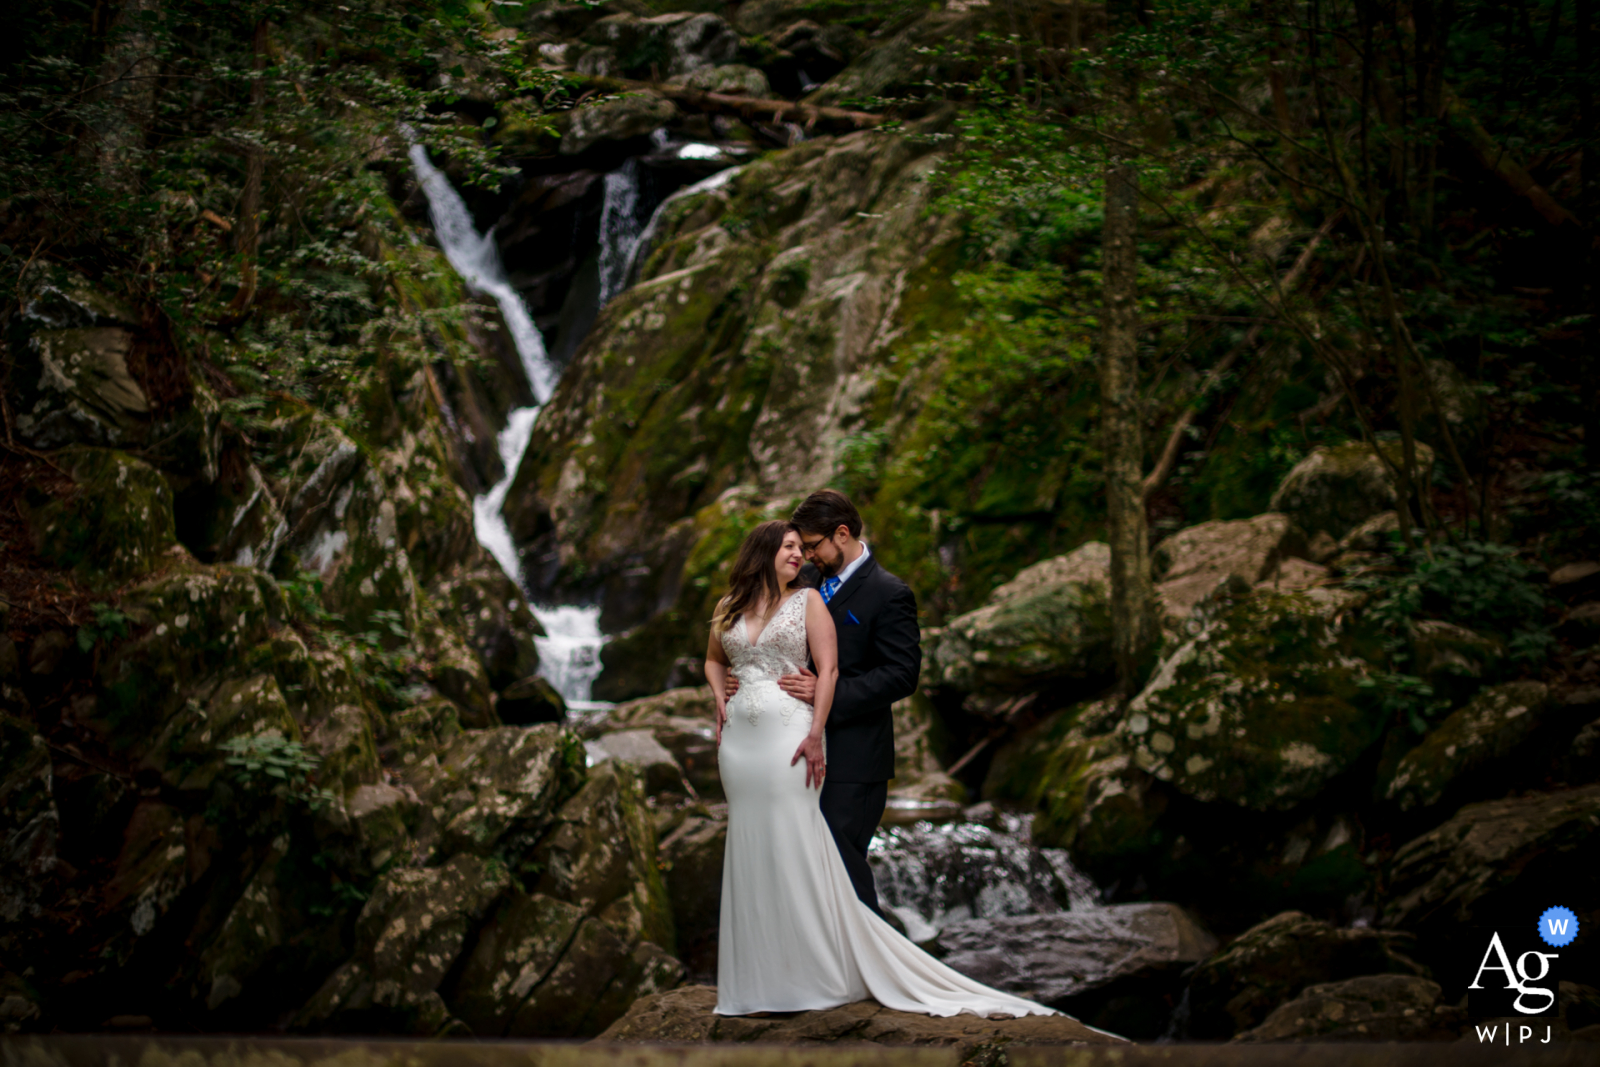 VA artistic wedding photo from Shenendoah, Virginia created as the Couple embraces in front of a waterfall